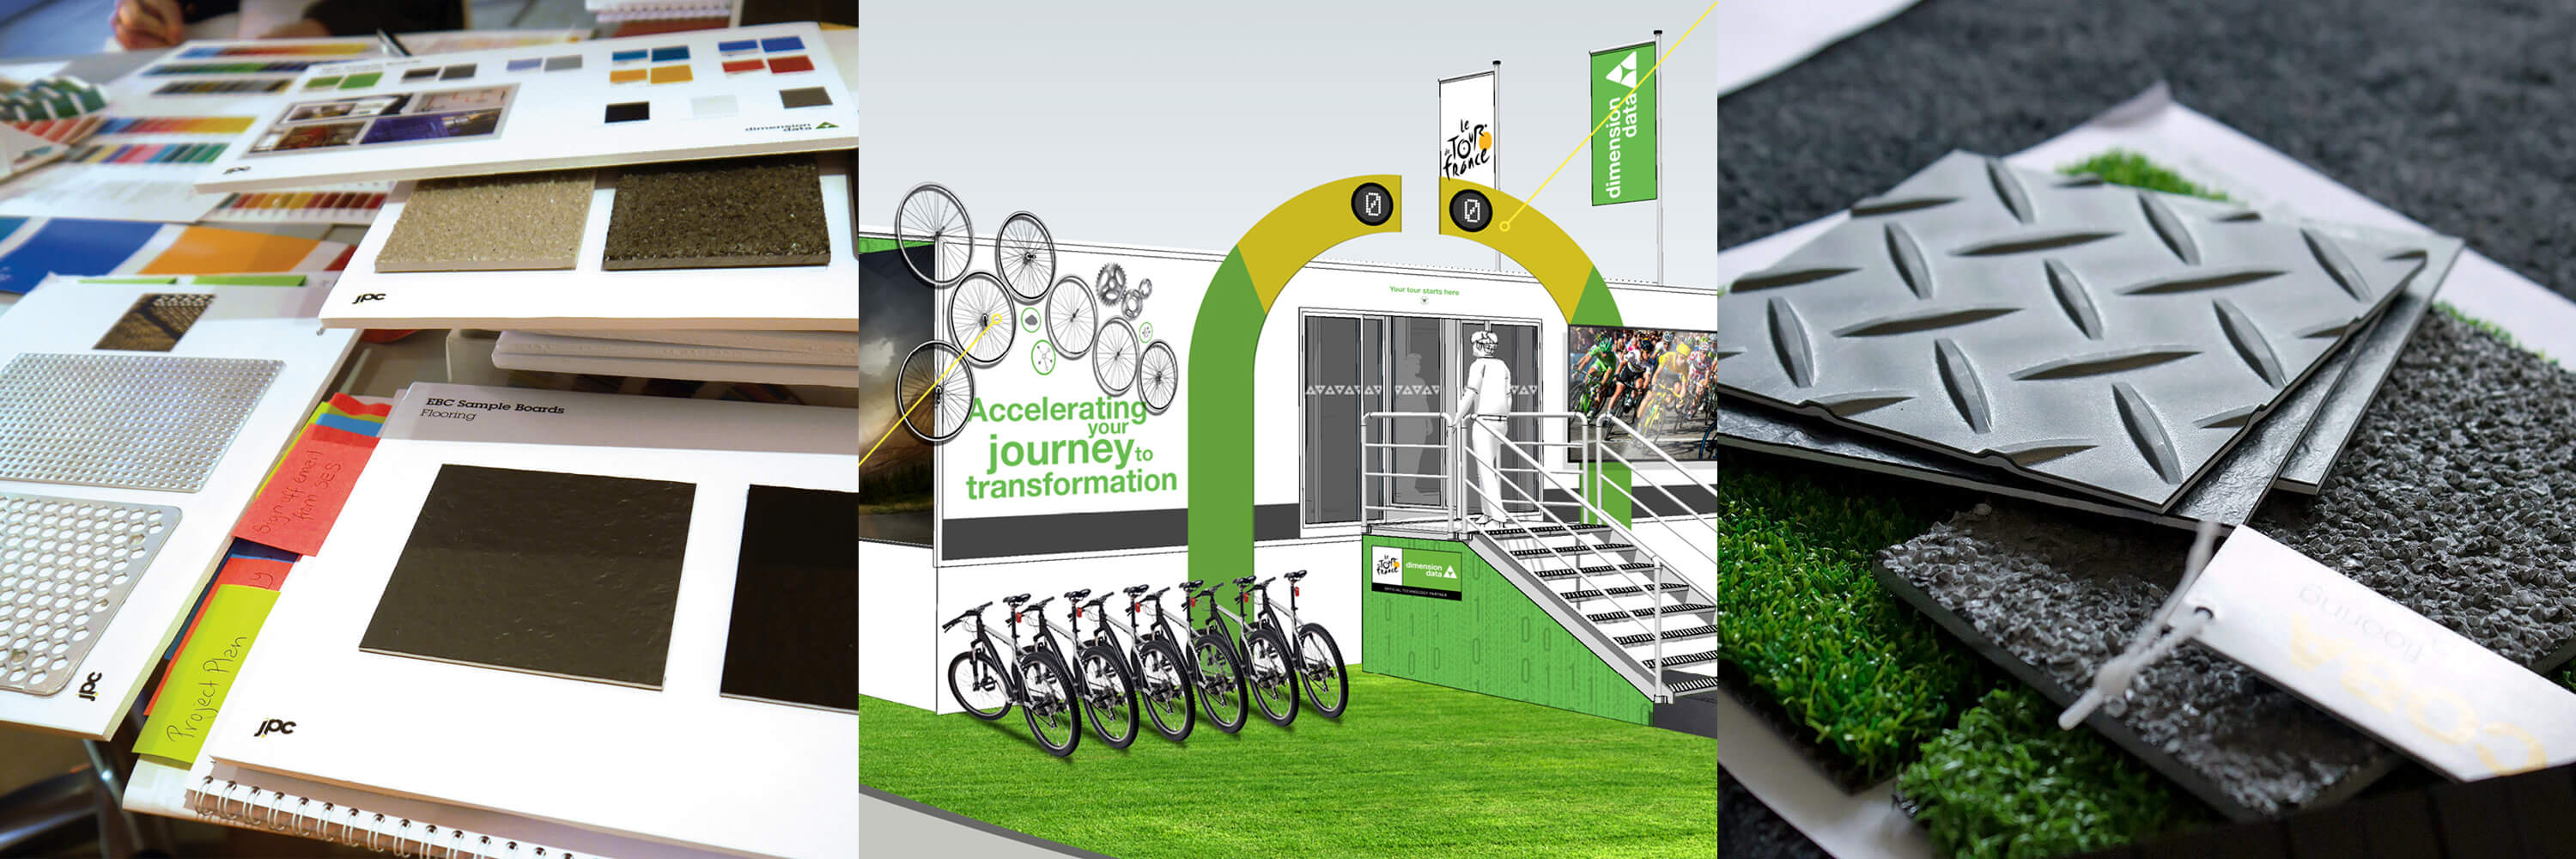 dimension-data-ambition-moodboards-and-samples